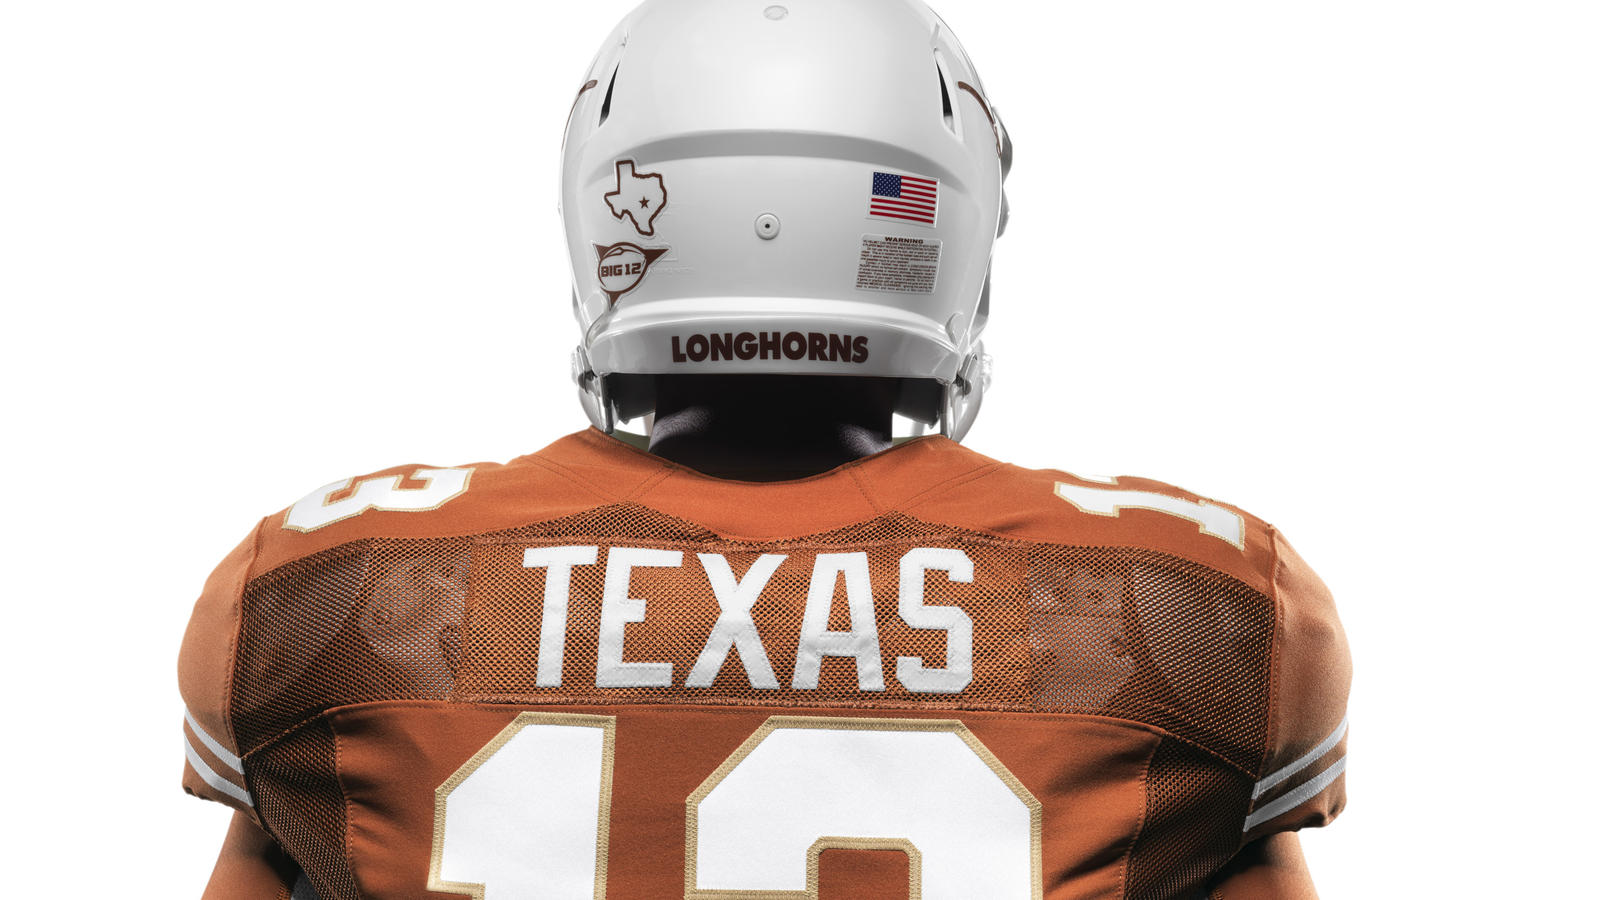 Ncaa Fb13 Uniforms Texas Texas Back Base 0000